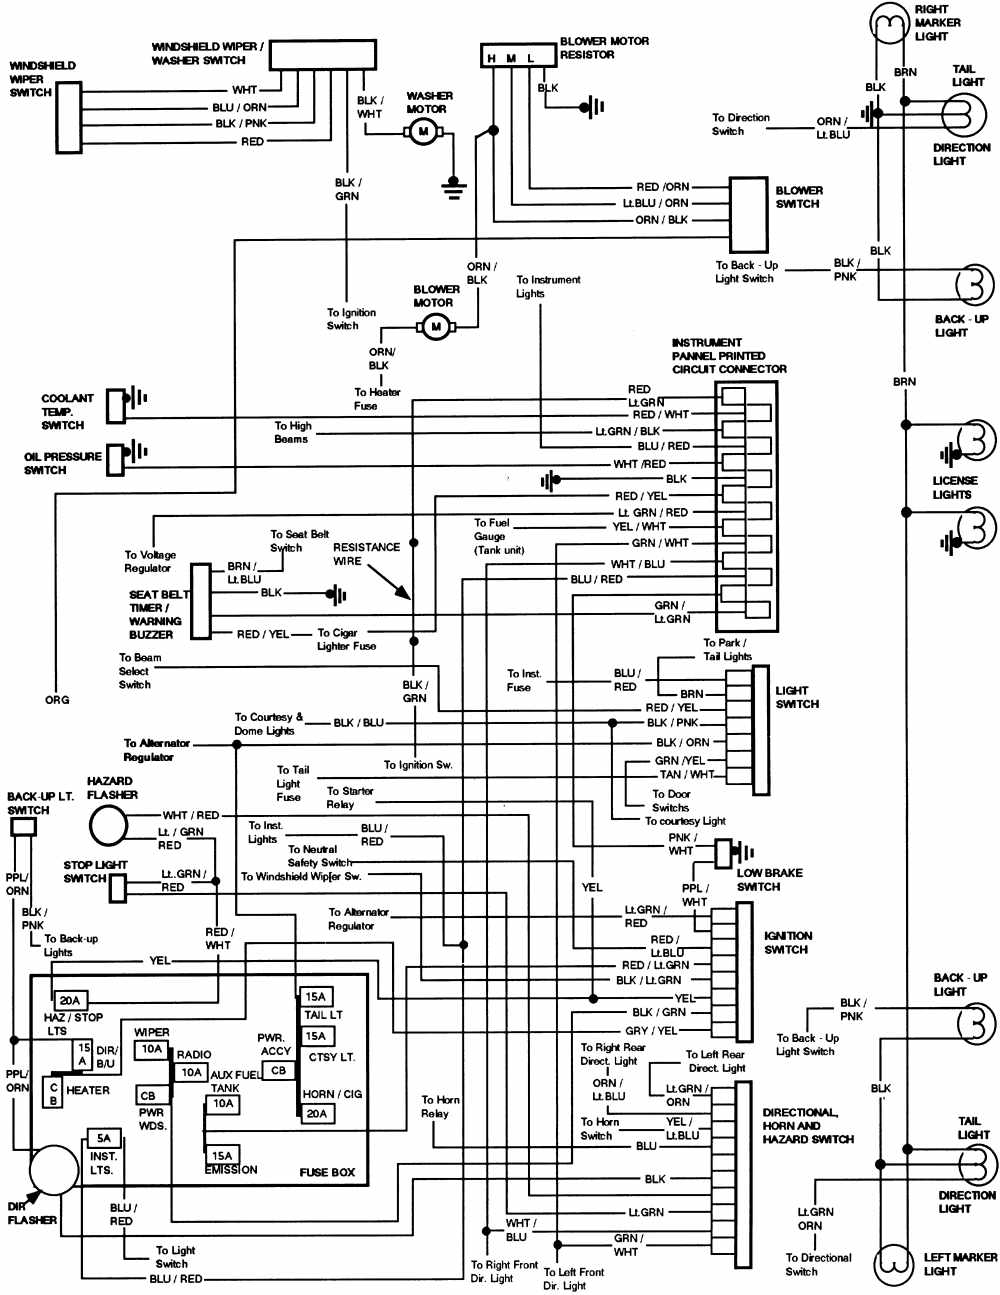 Ford Bronco 1984 Instrument Panel Wiring Diagram | All about Wiring Diagrams